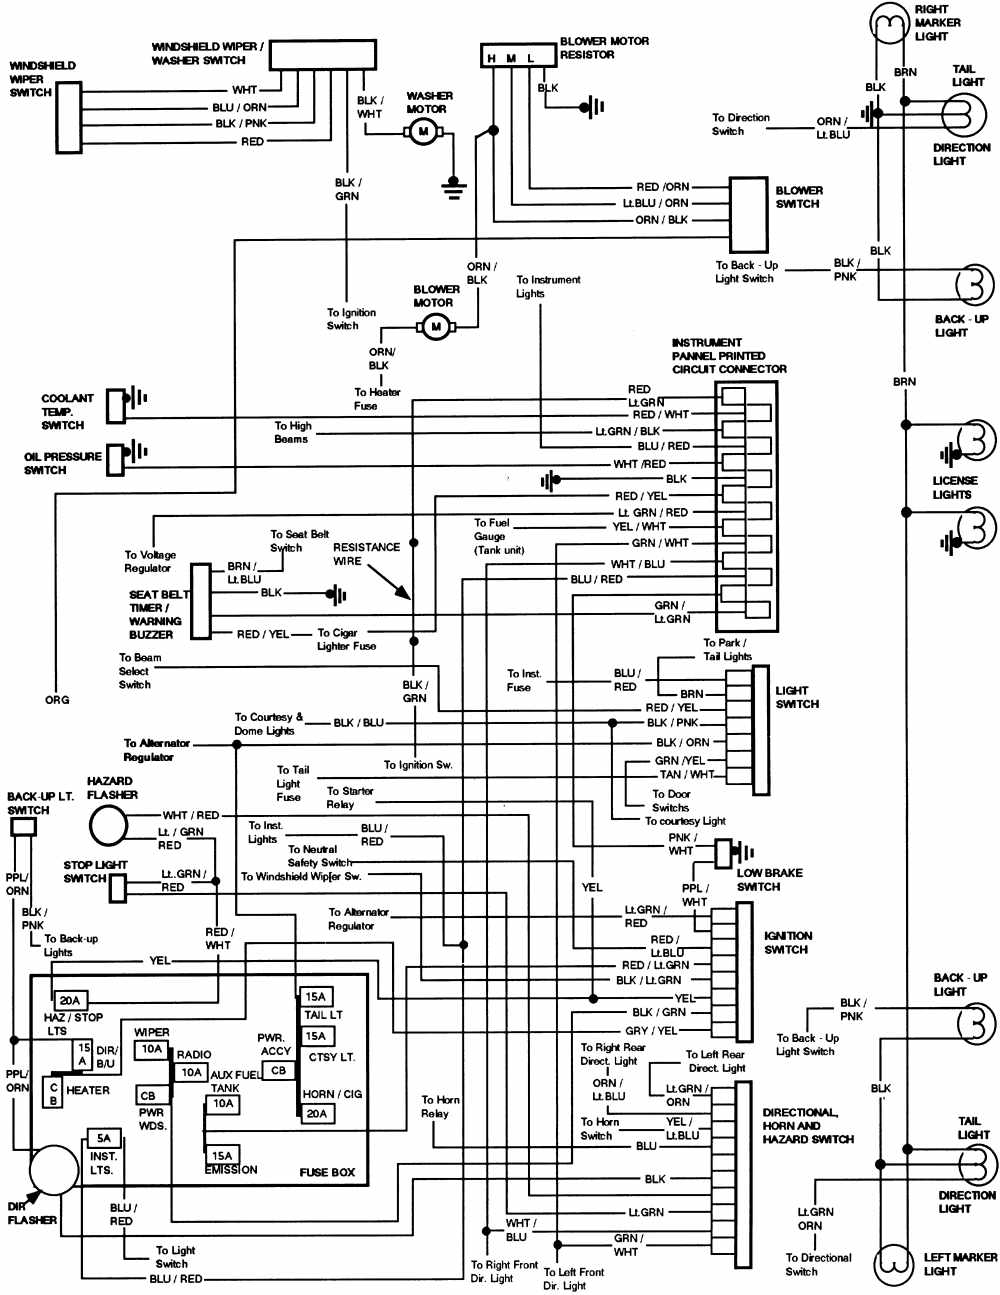 Ford Bronco 1984 Instrument Panel Wiring Diagram | All about Wiring Diagrams